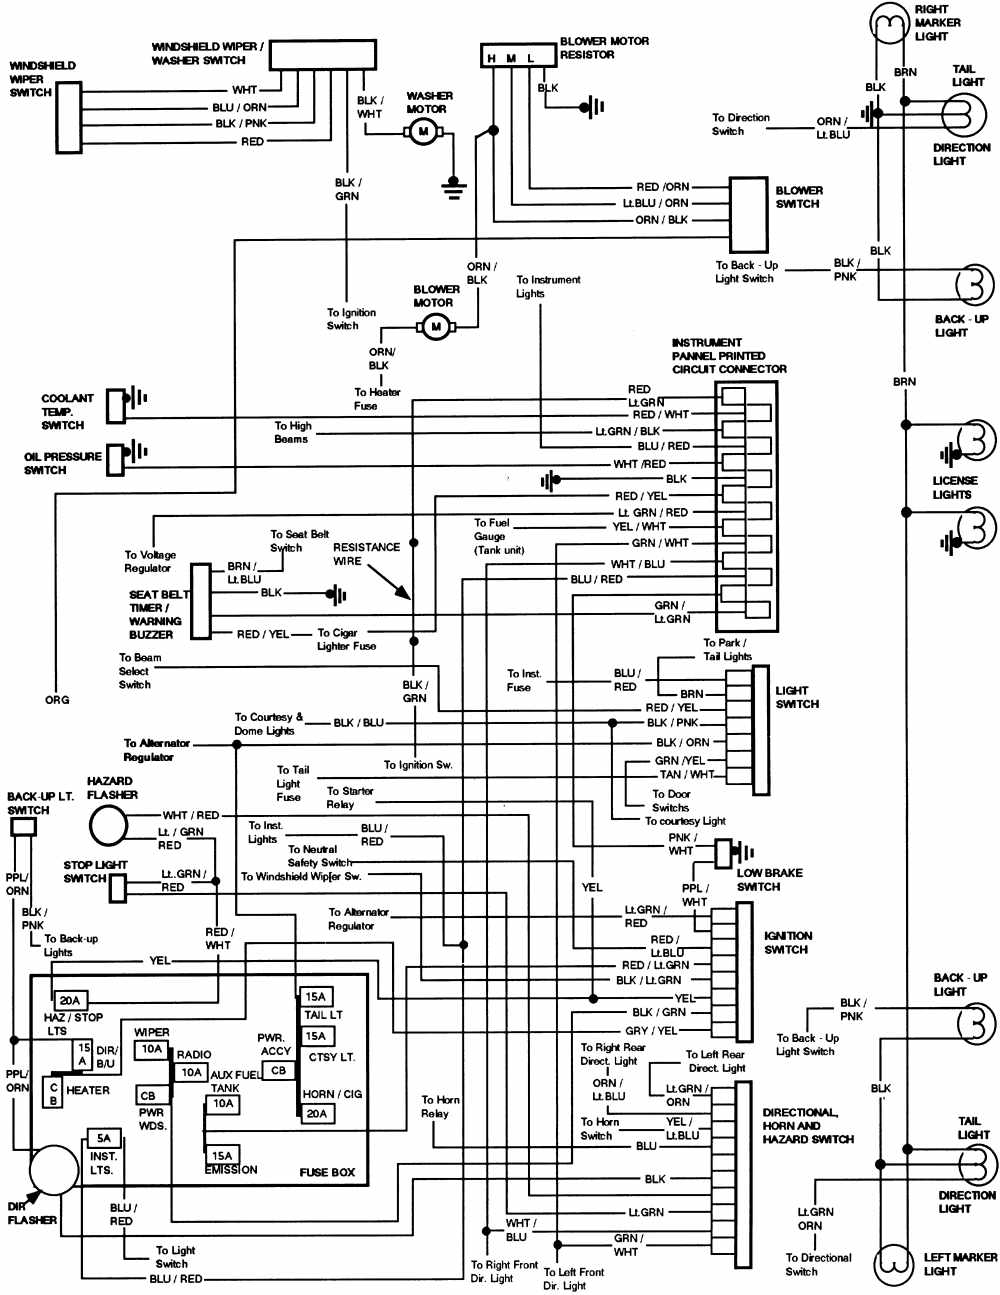 Ford Bronco 1984 Instrument Panel Wiring Diagram | All about Wiring Diagrams